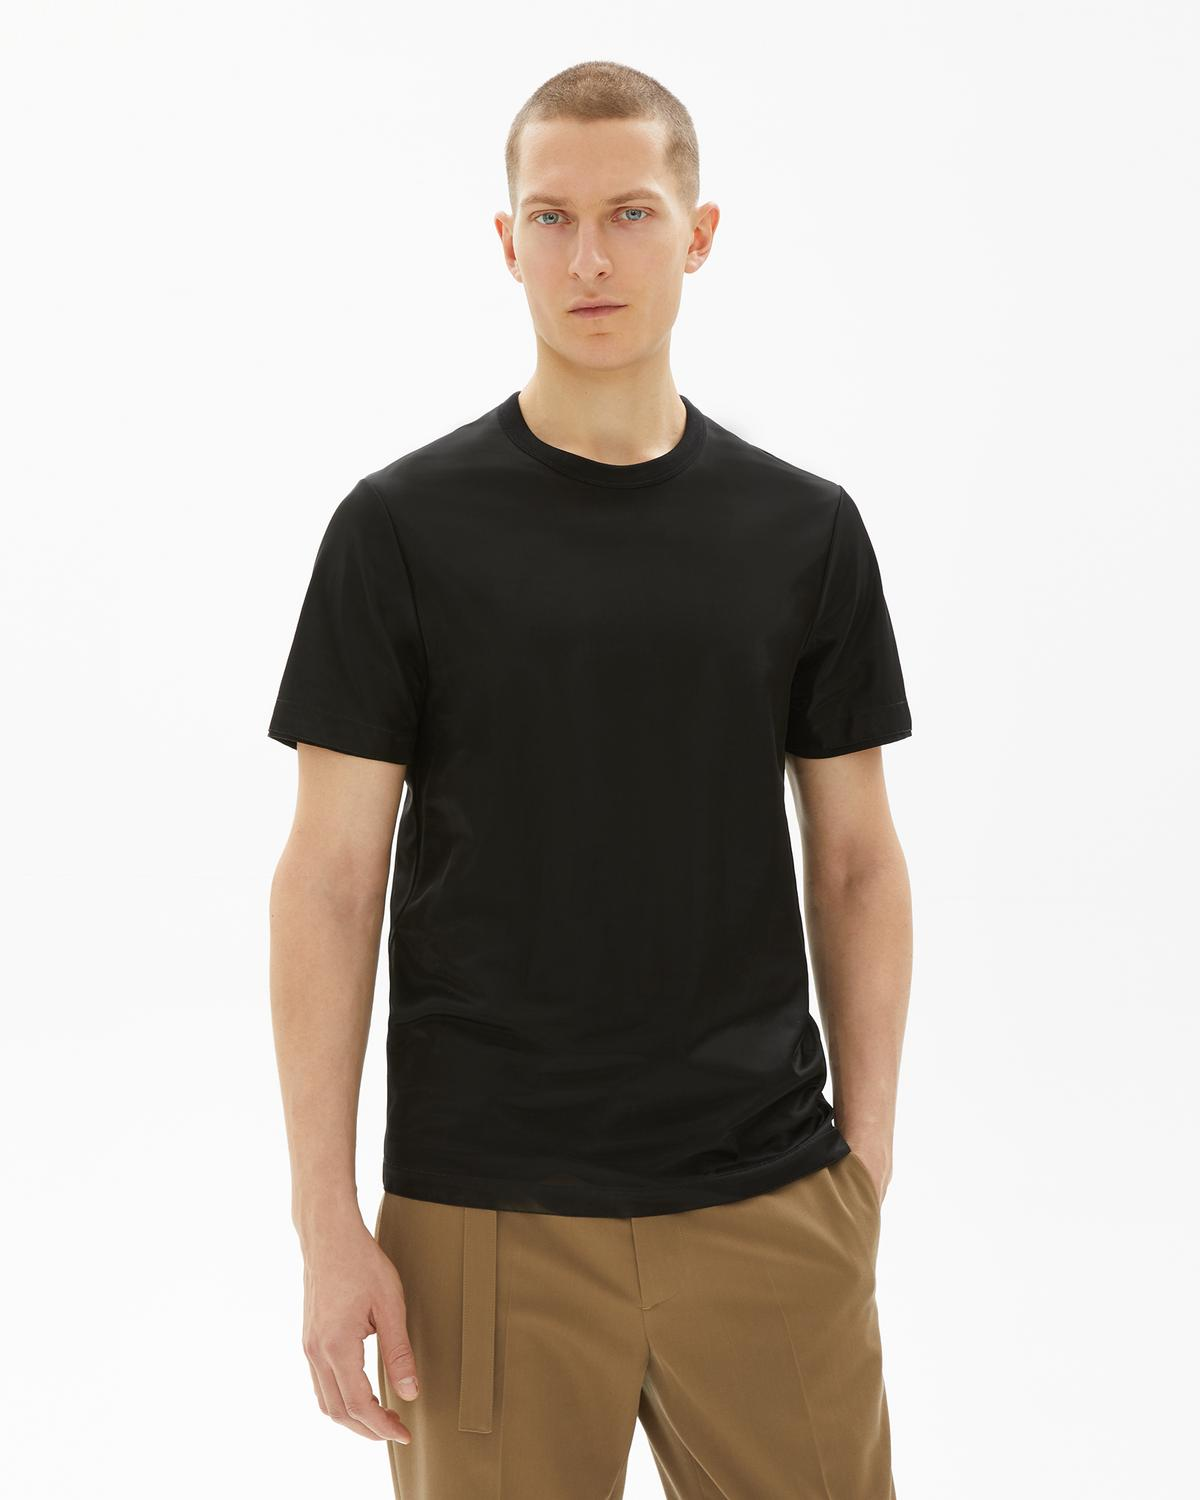 DOUBLE SHORT-SLEEVE T-SHIRT